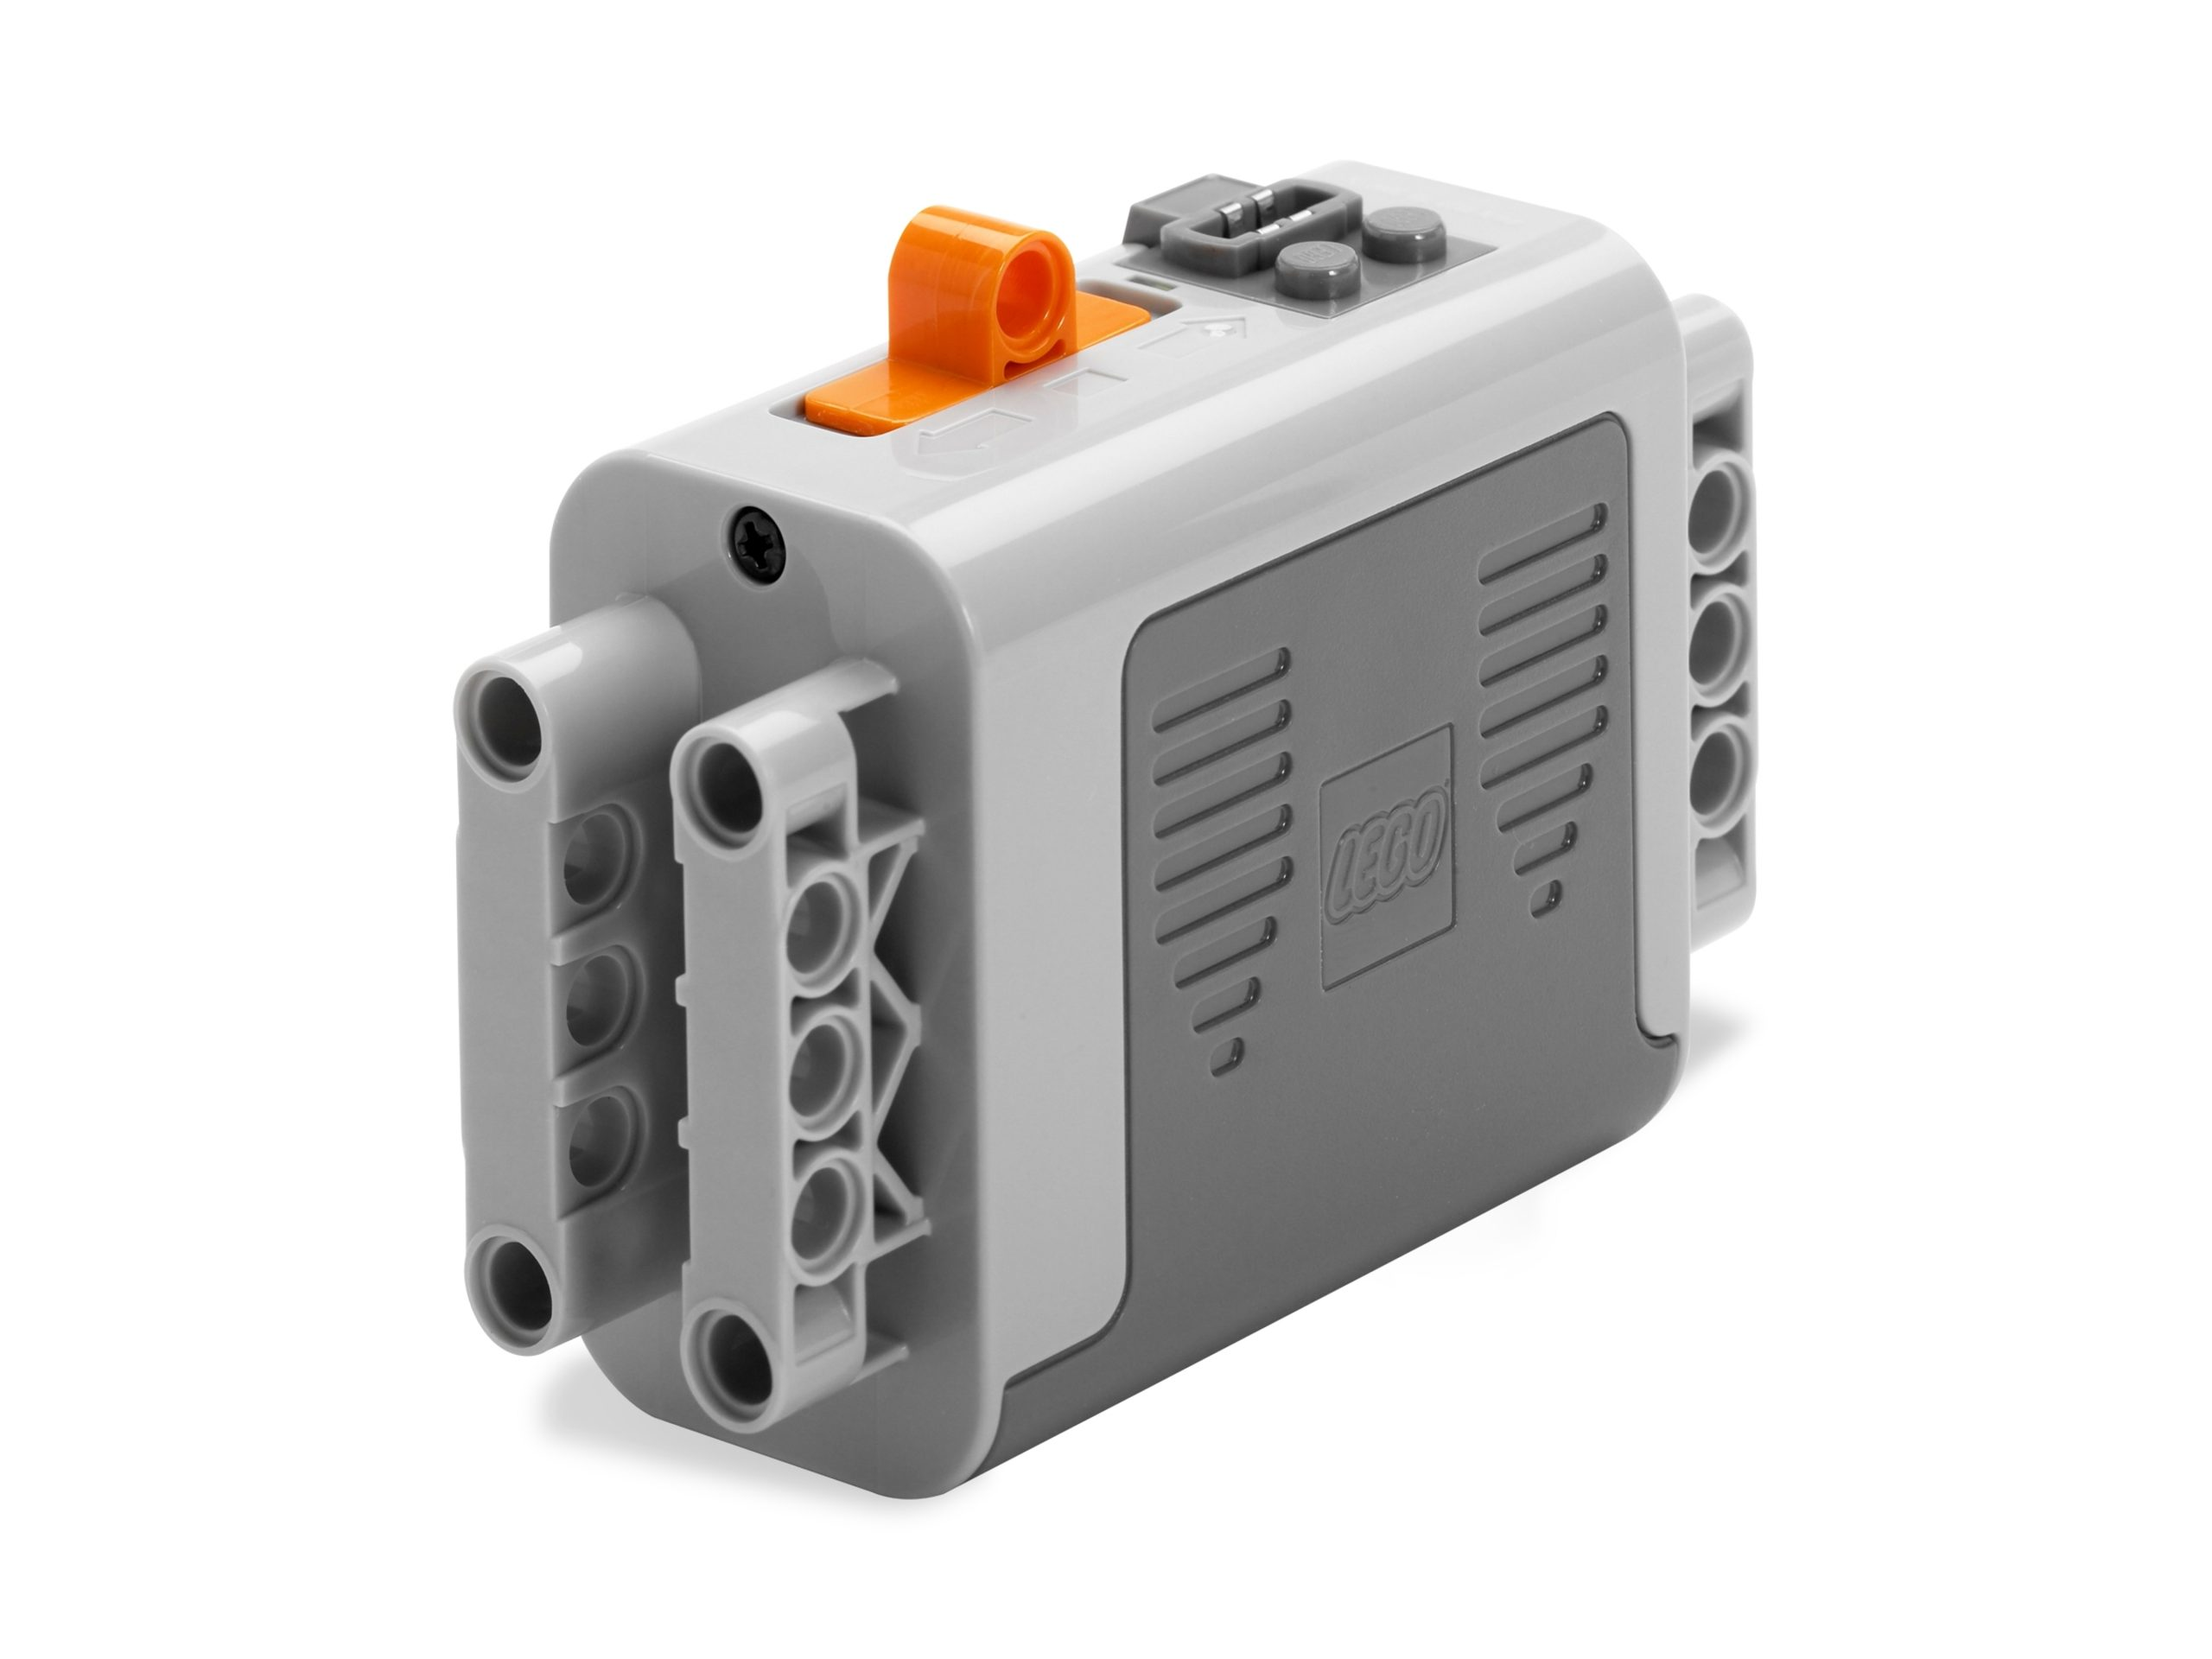 lego 8881 power functions batteriebox scaled